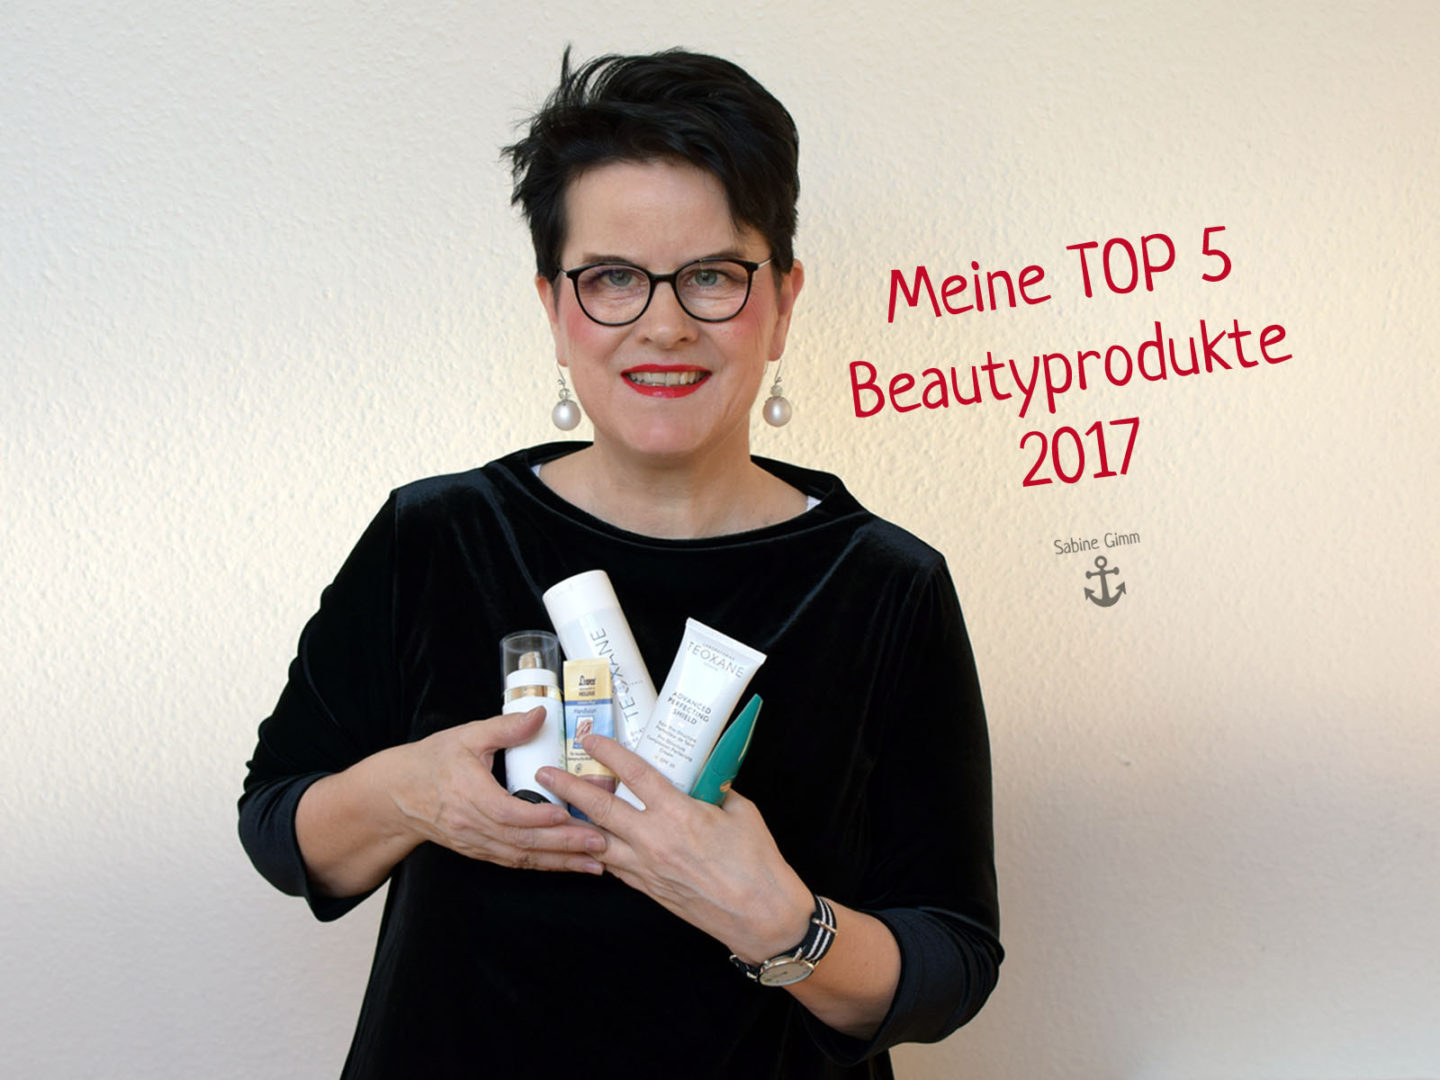 Meine TOP 5 Beautyprodukte 2017